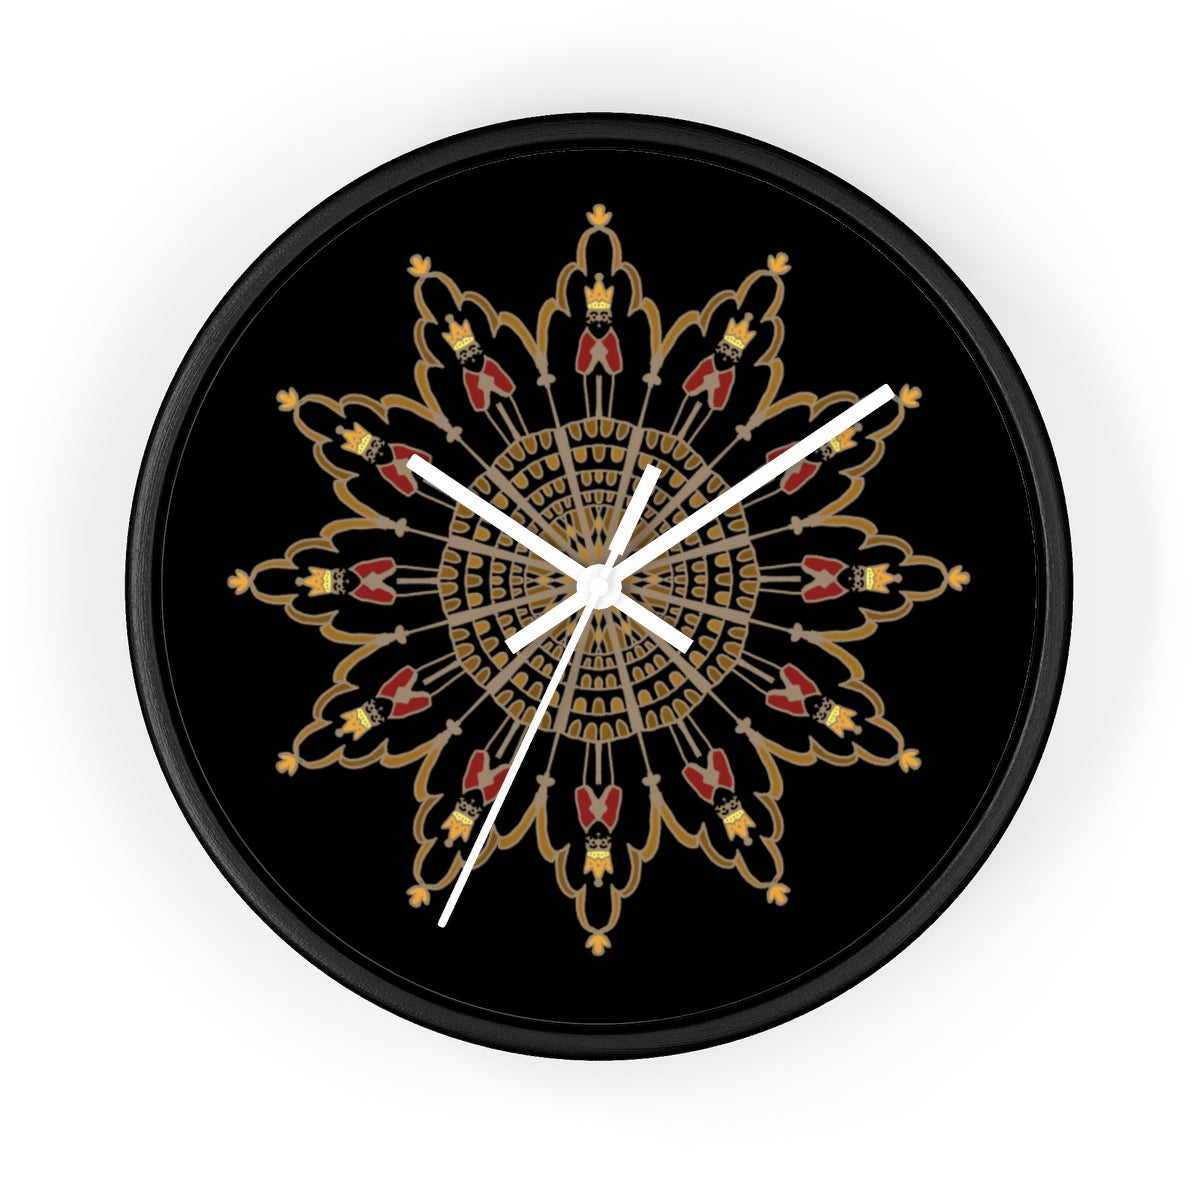 King of good times - Wall clock